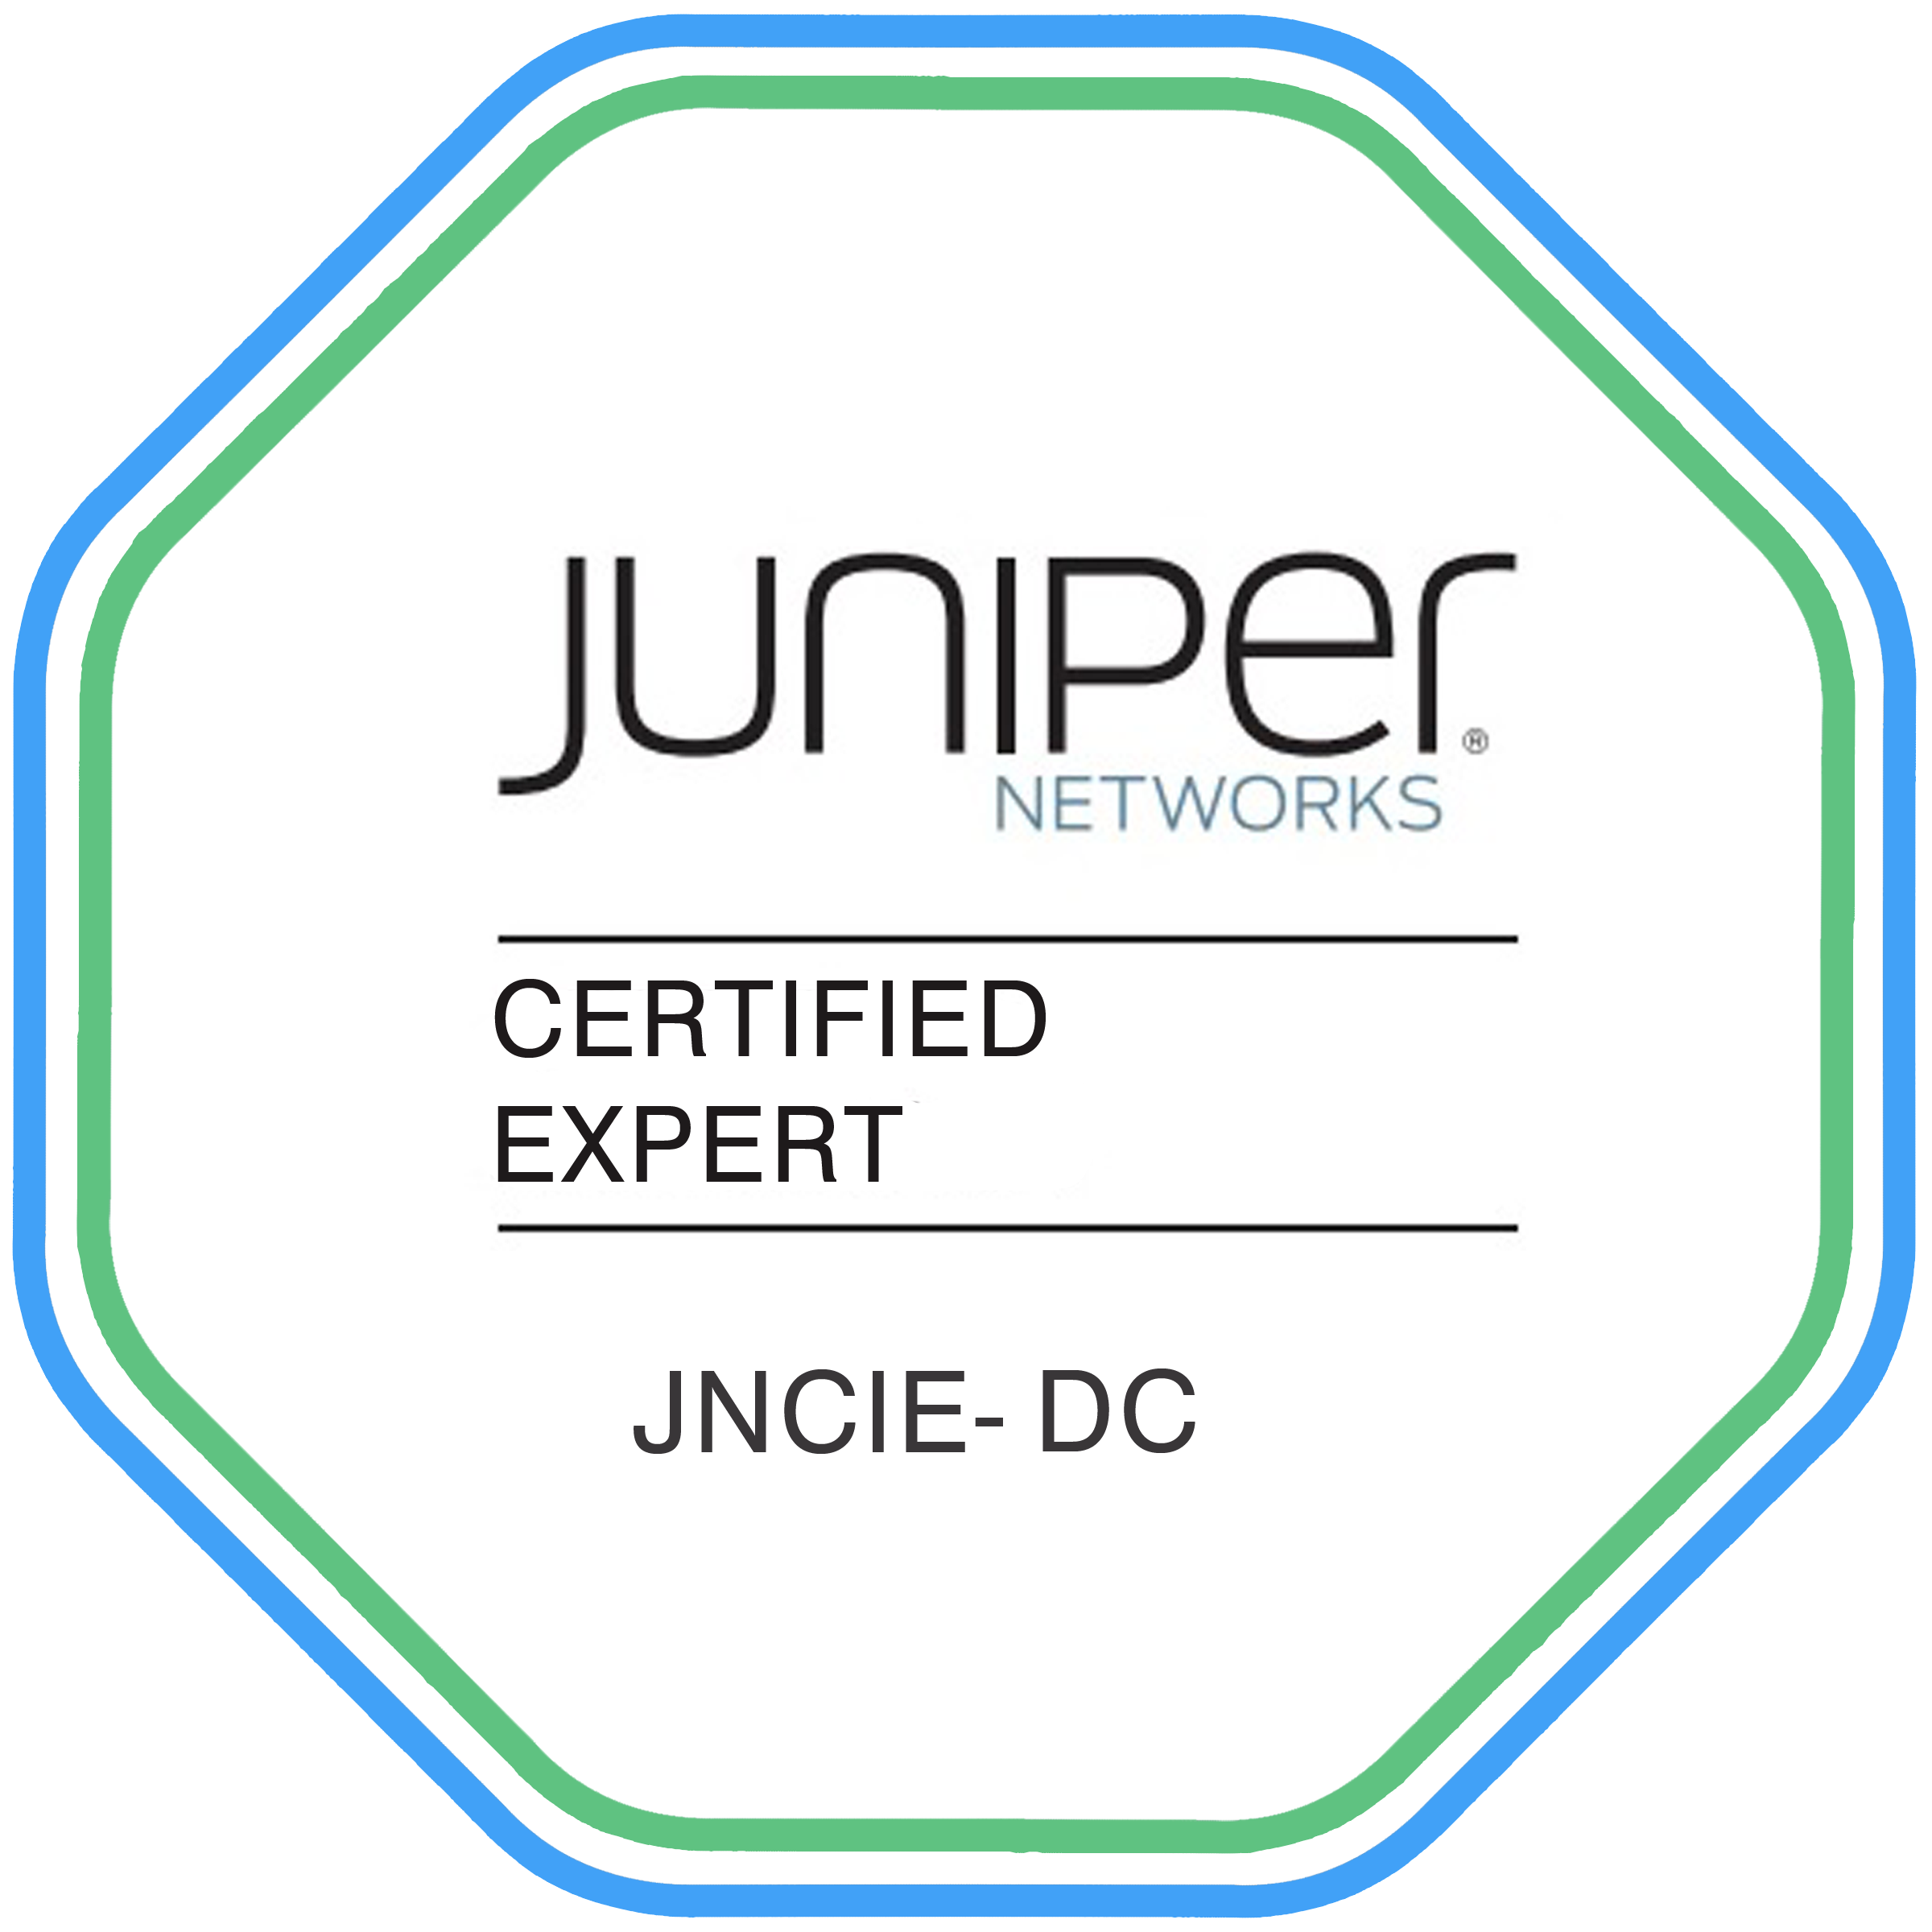 Data Center Certification Track - JNCIE- DC